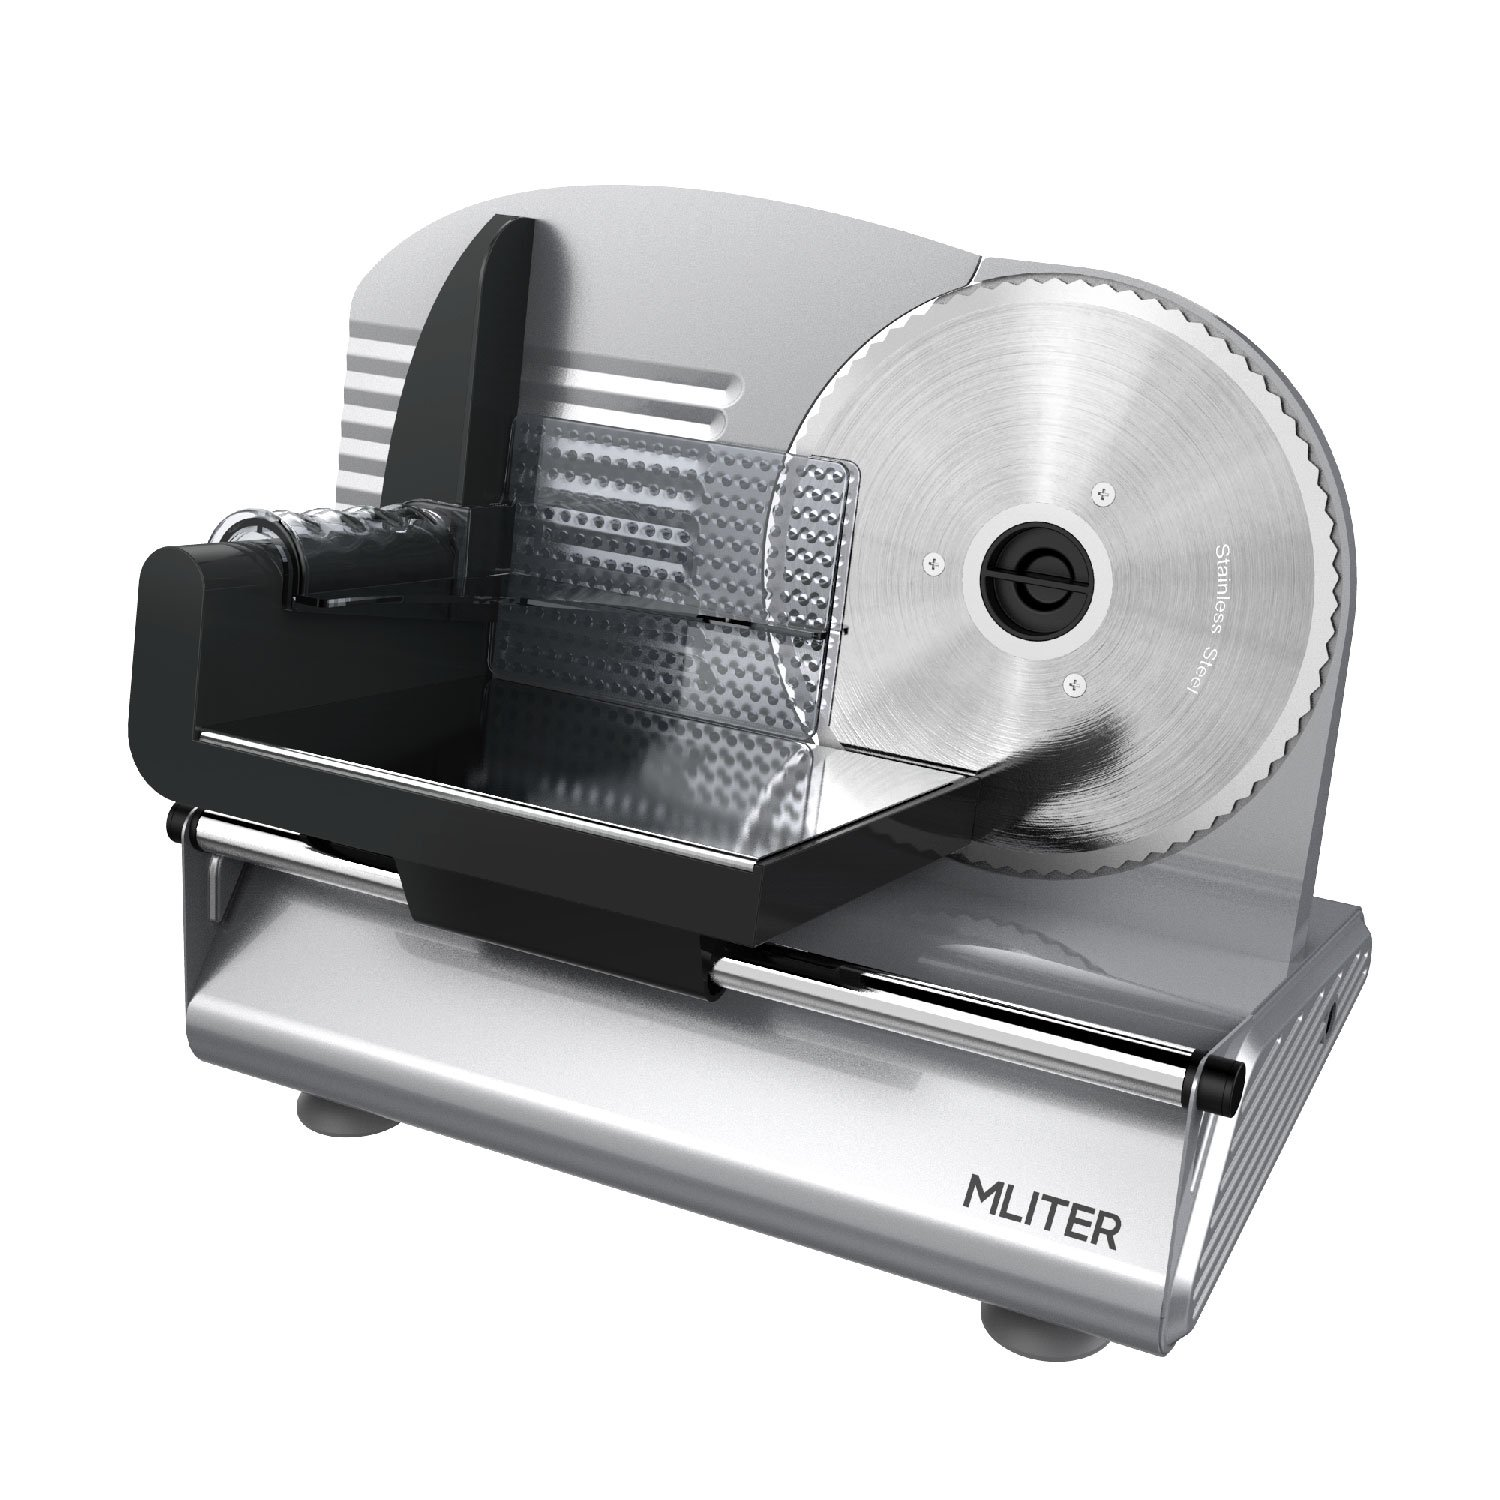 MLITER Electric Food Slicer Precision 19cm Stainless Steel Blade ...